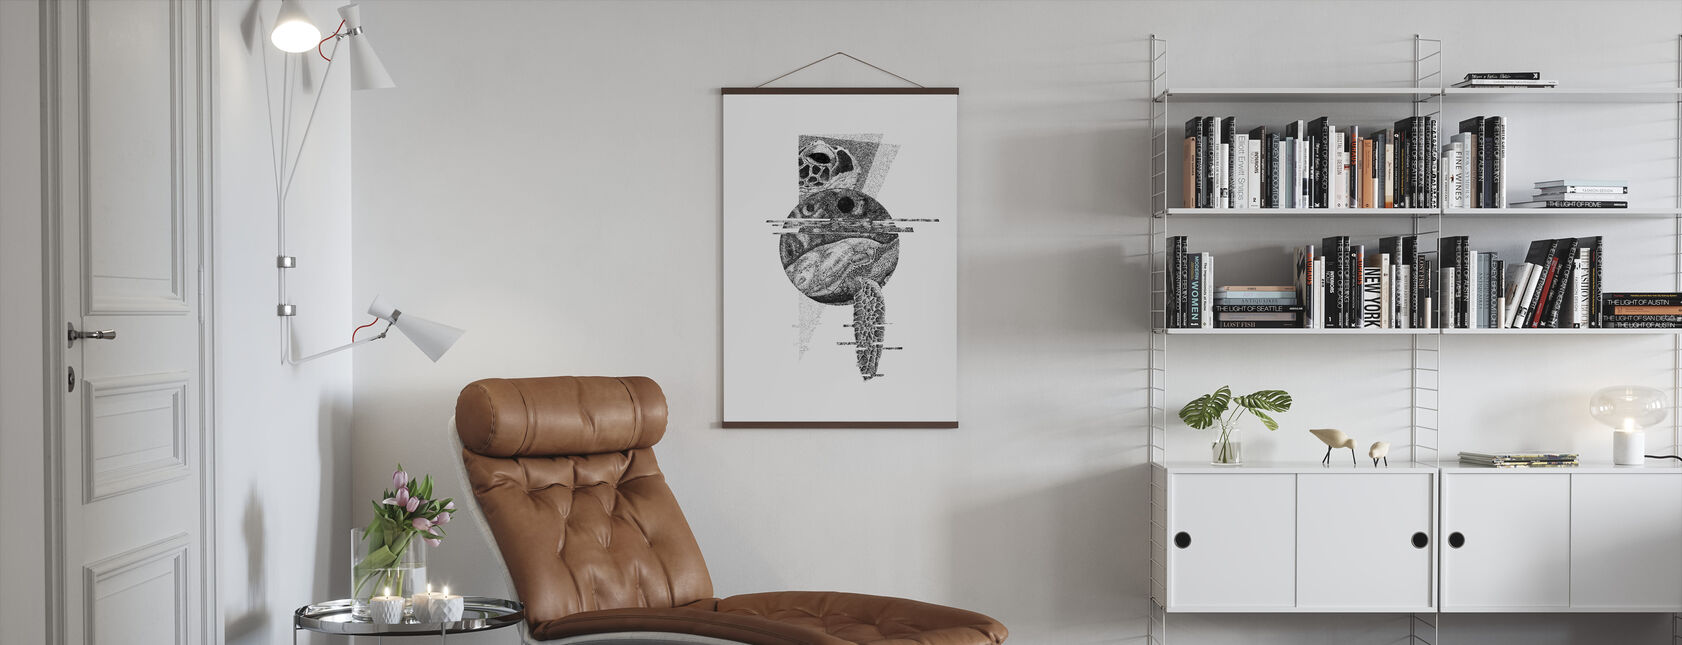 Interrupted Universe II - Poster - Living Room